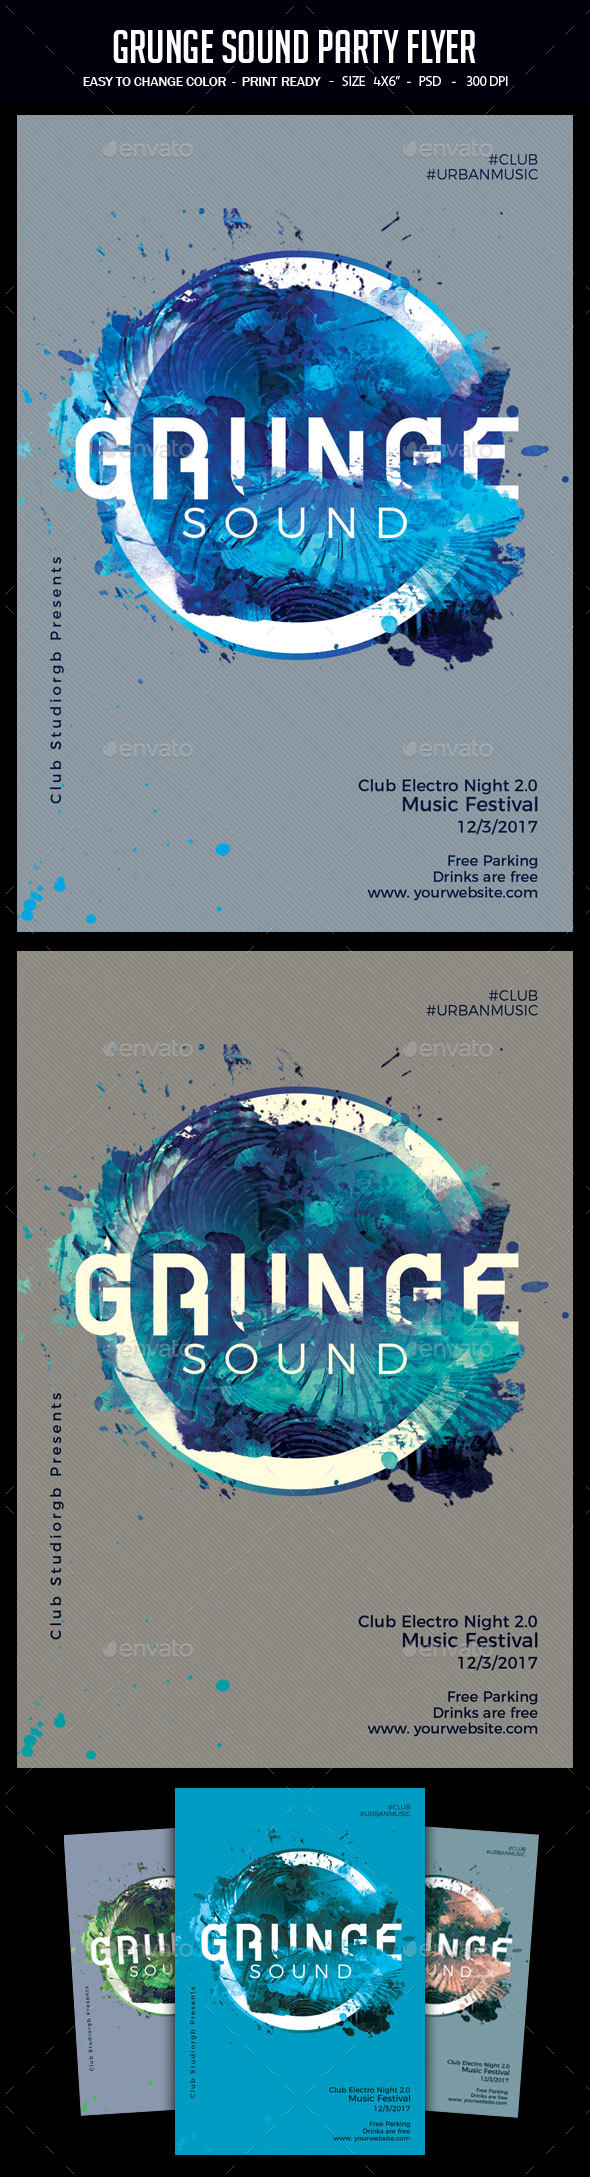 Grunge Sound Party Flyer - Clubs & Parties Events